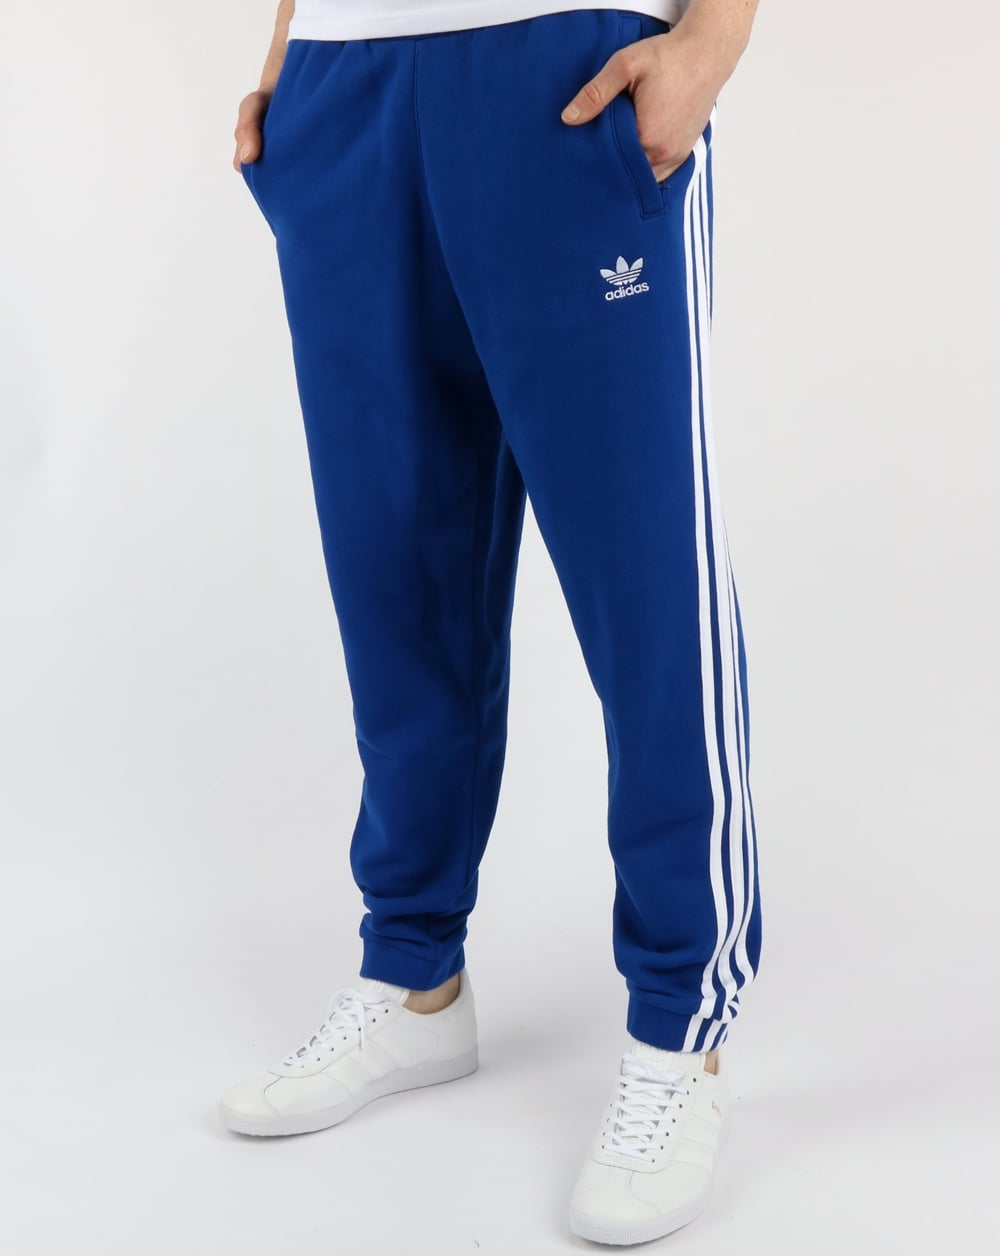 de1d46b2aa4 Adidas Originals 3 Stripes Track Pants Collegiate Royal